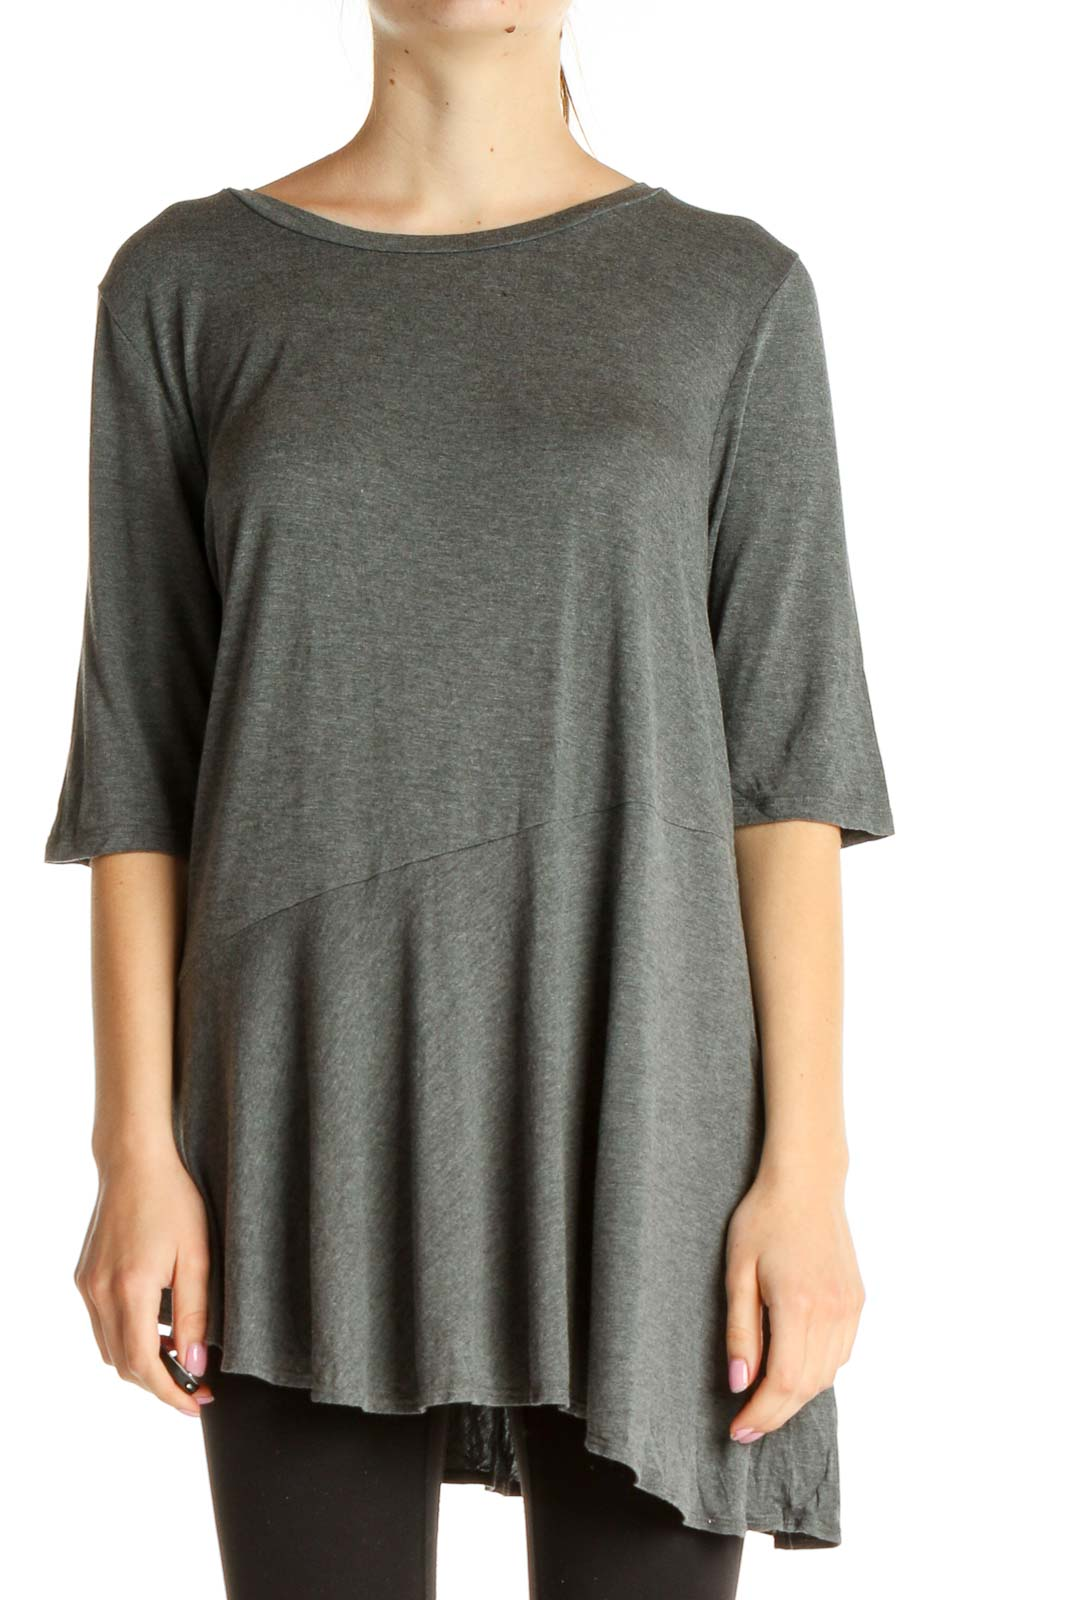 Gray Solid Casual T-Shirt Front